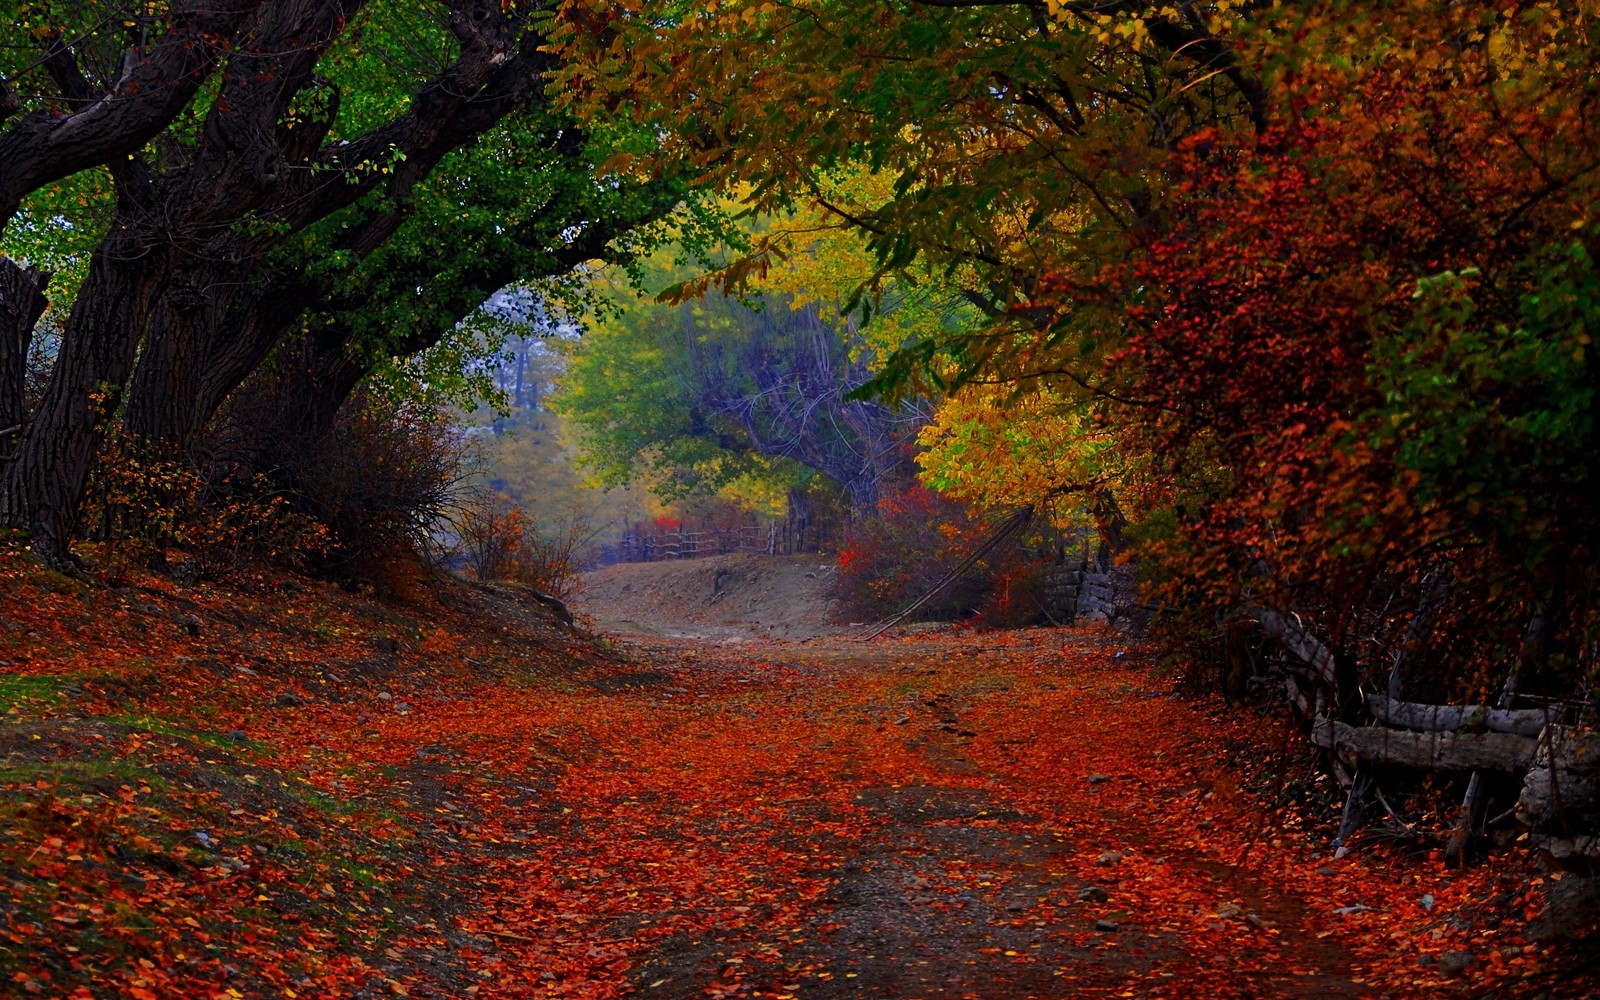 Retro Fall Computer Wallpaper Nature Landscape Colorful Path Trees Fence Leaves